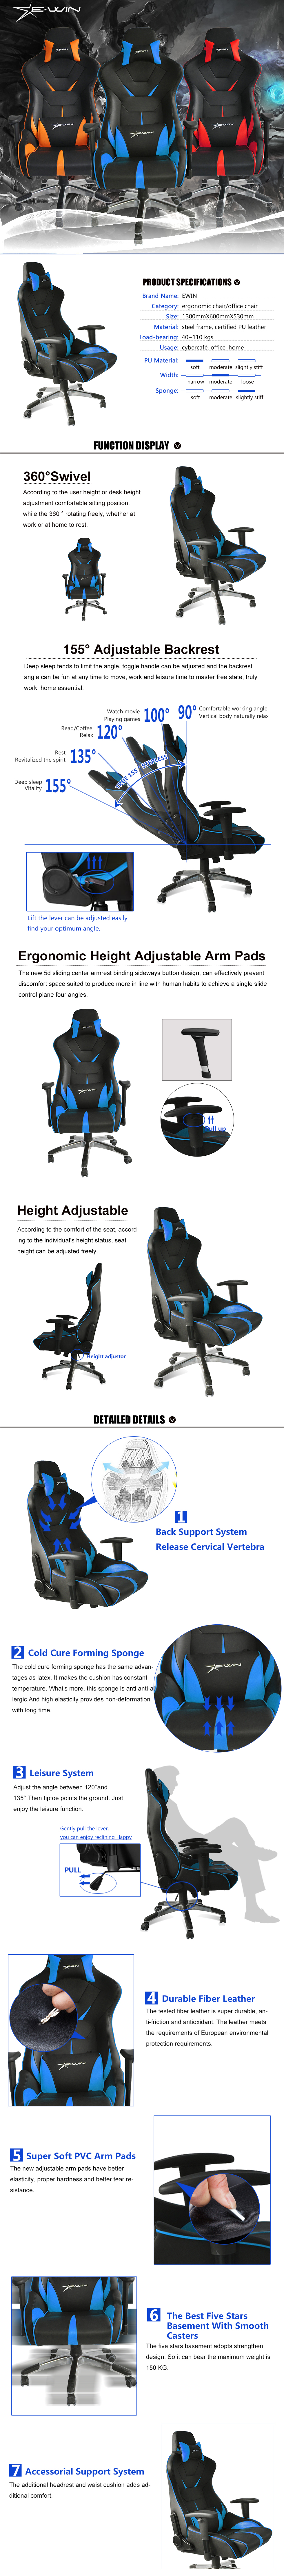 EwinRacing Flash XL series gaming chairs